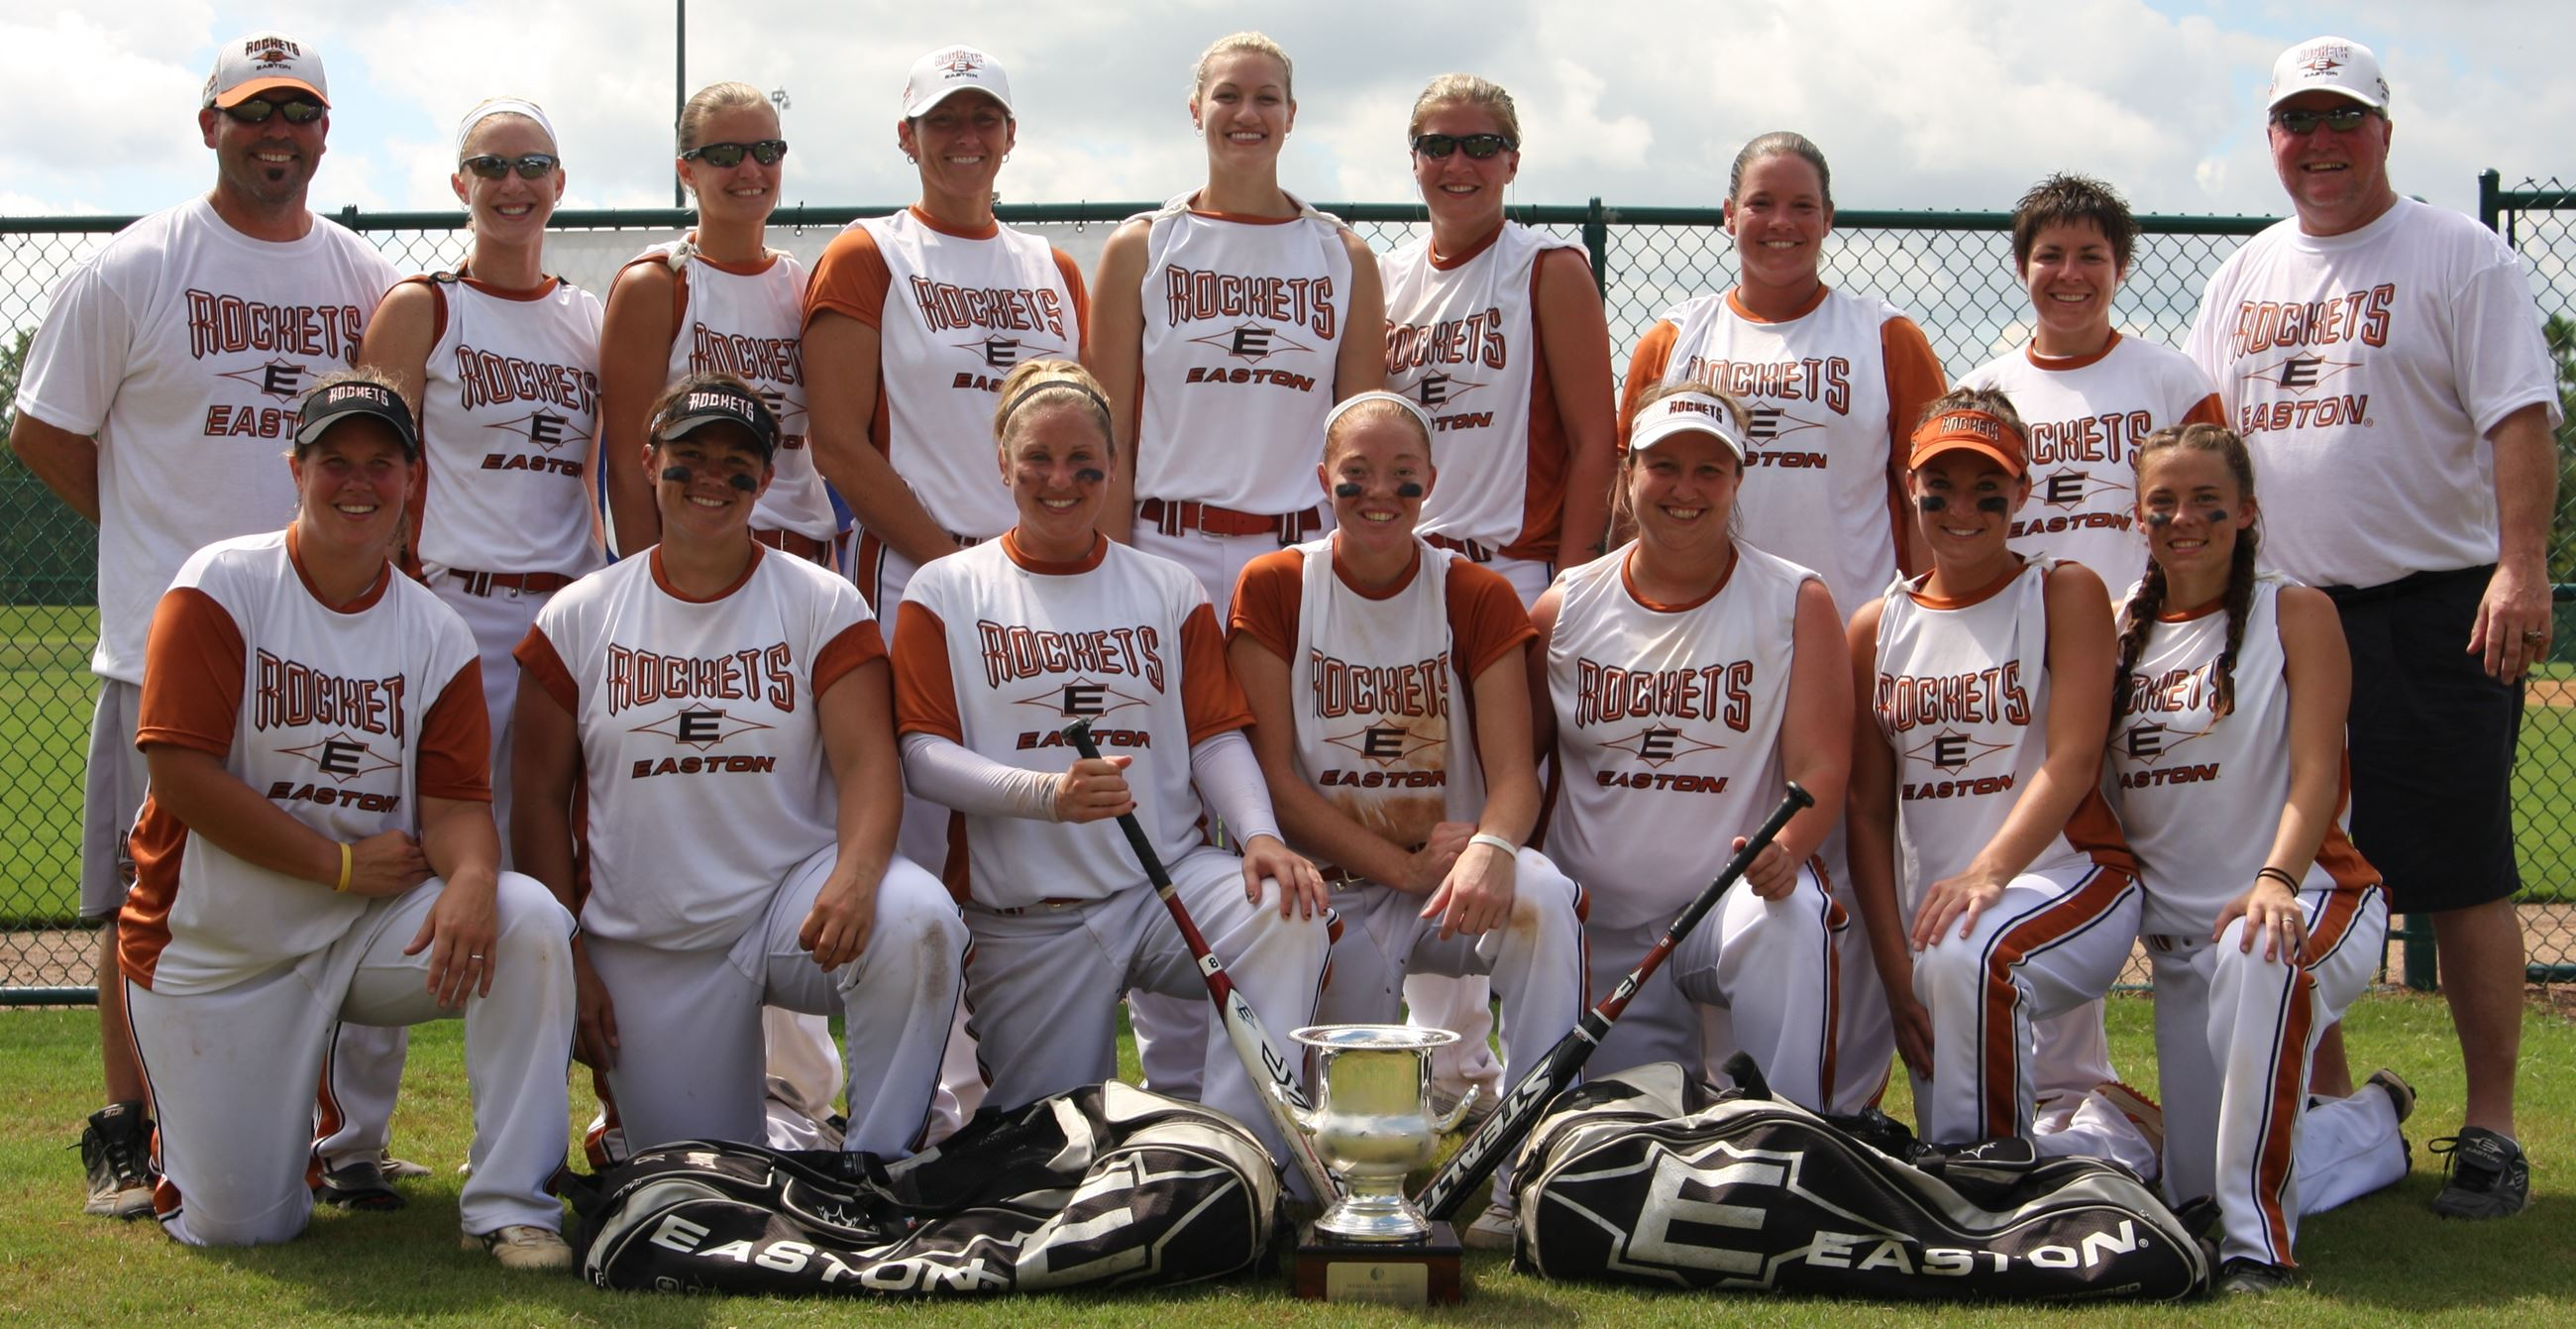 Softball Team Posing for a Picture